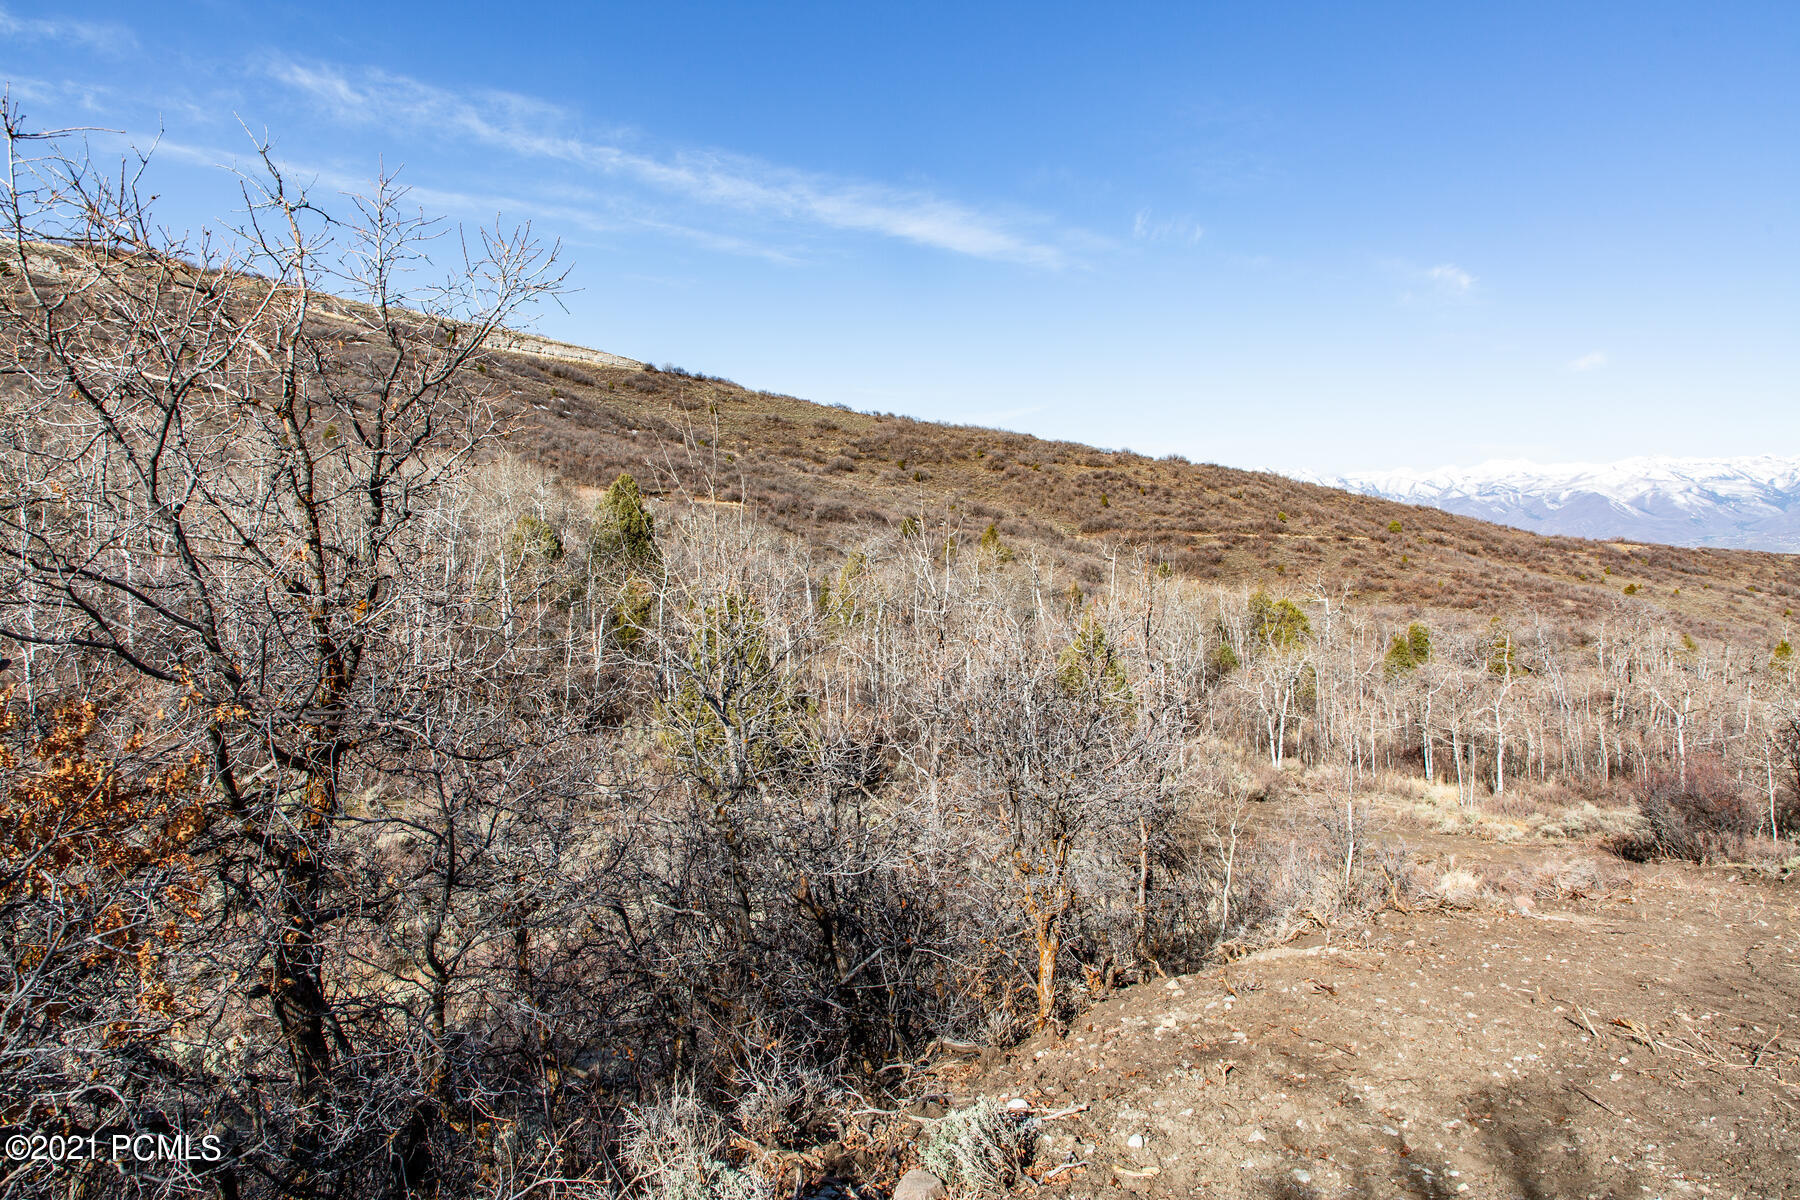 This 1.8 acre lot boasts amazing western views and is located in a secluded area of the Timber Lakes gated community. The private, peaceful setting is within minutes of Heber City, reservoirs, and the ski mountains. Build your dream primary or secondary retreat and migrate to enjoy the Utah mountain lifestyle. The adjacent 1.5 acre lot is also available. Plans by Upwall Design included.